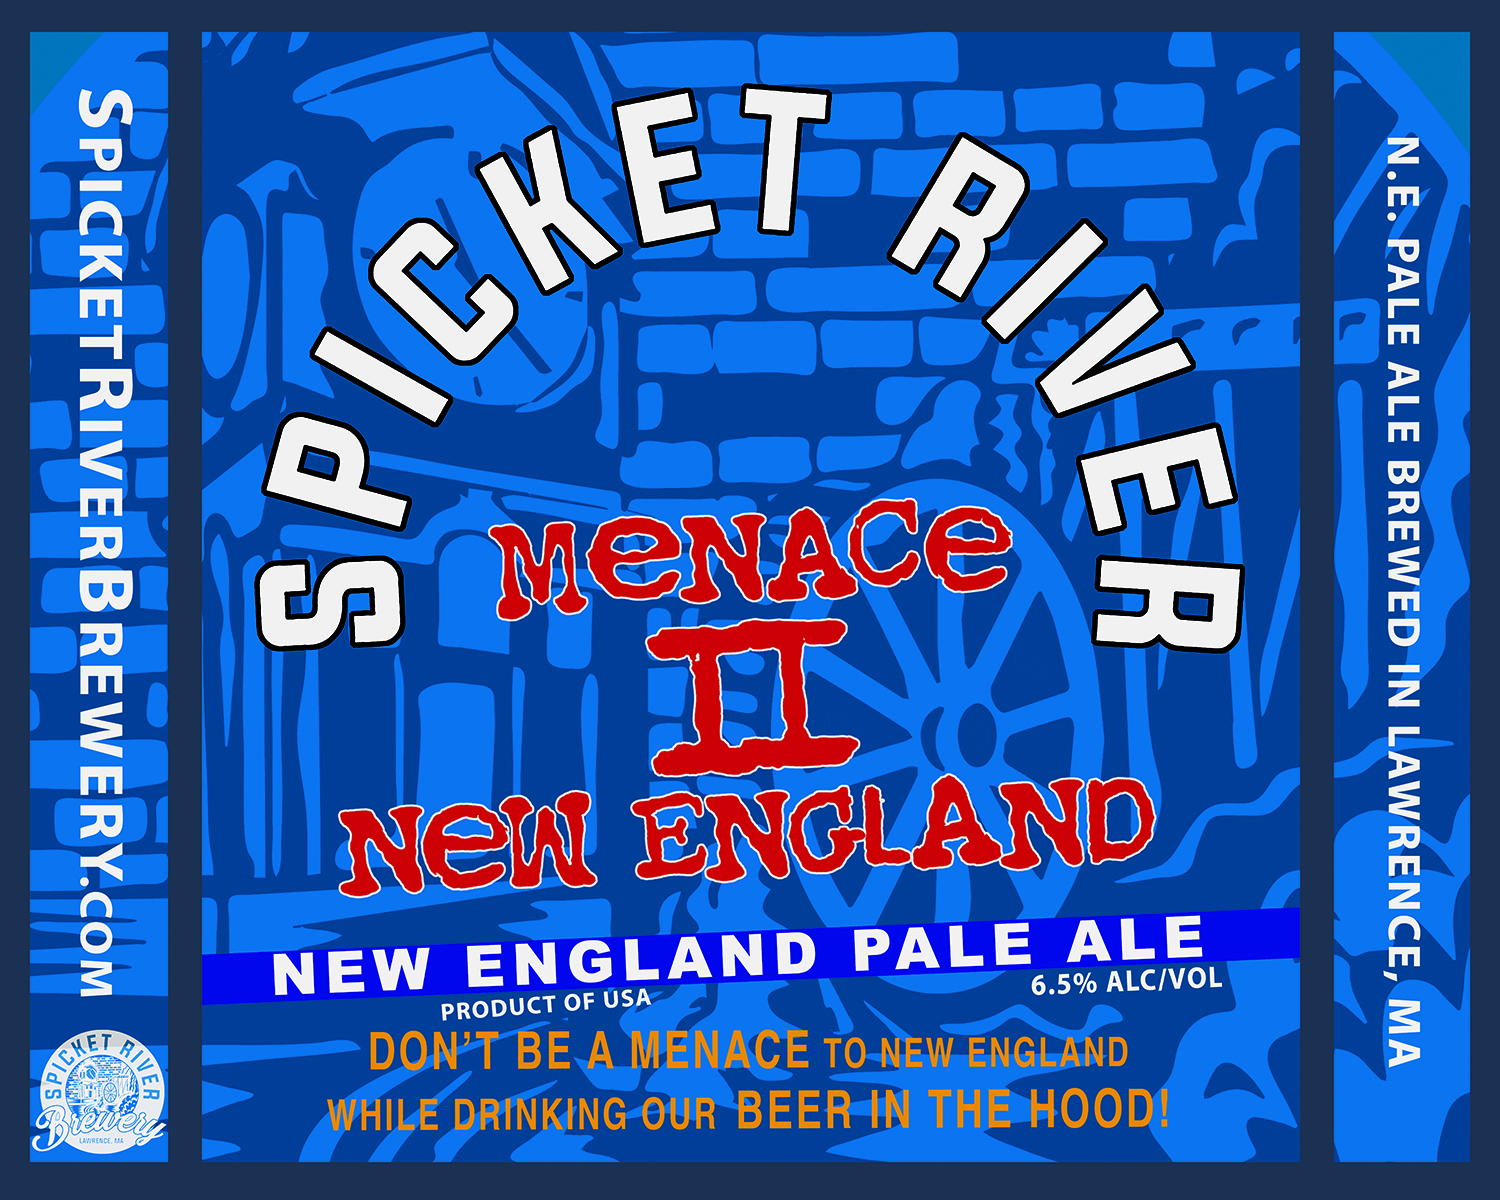 Menace ii new england - American IPA (6.4% abv)A true menace to New England style IPA, Menace II New England is raw and juicy. A hazy, medium bodied blend of oats with four types of malt, and five finely blended hops. What you say bout my mama?!?!?